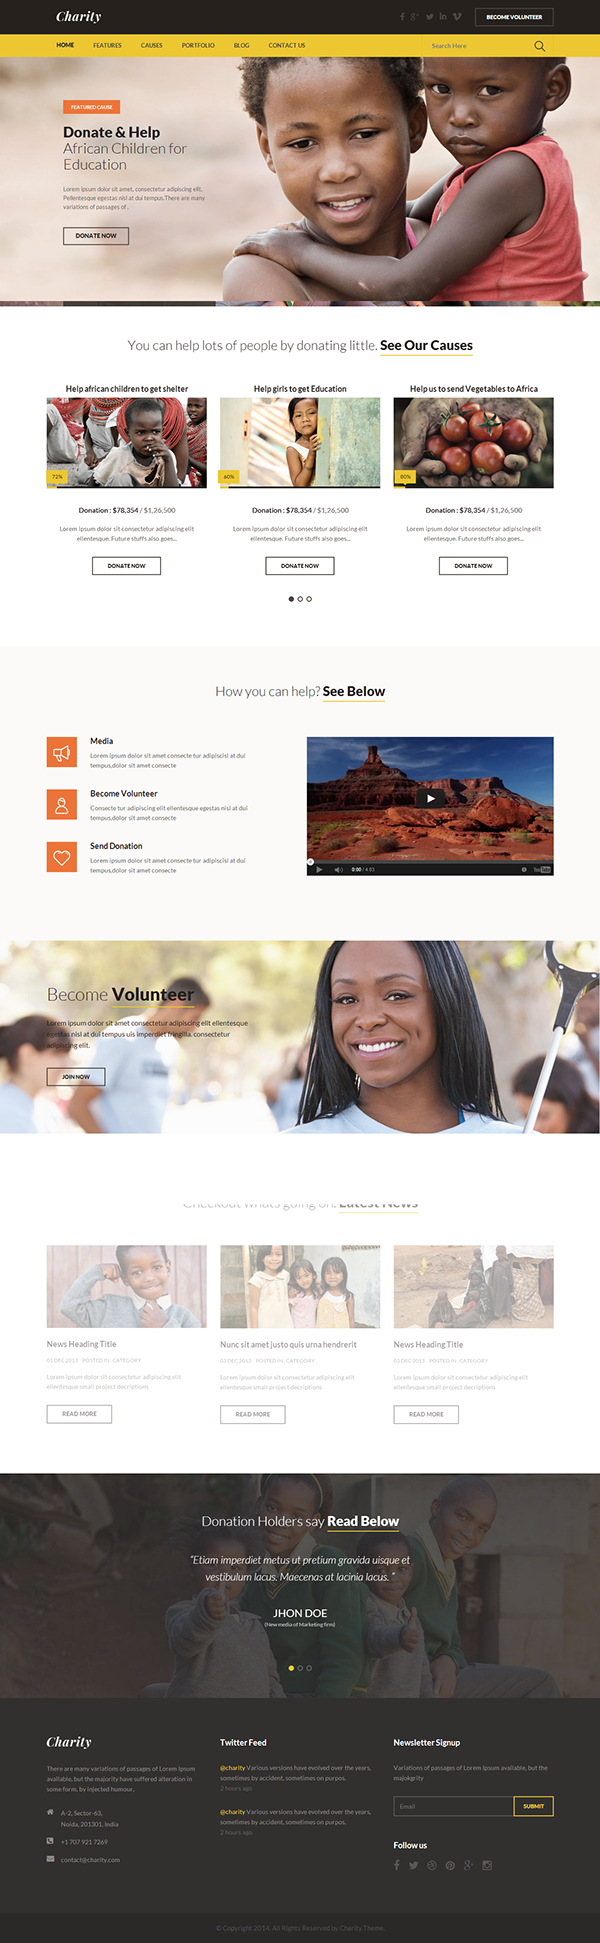 Charity   Nonprofit/NGO/Fundraising HTML Template On Behance  Ngo Templates